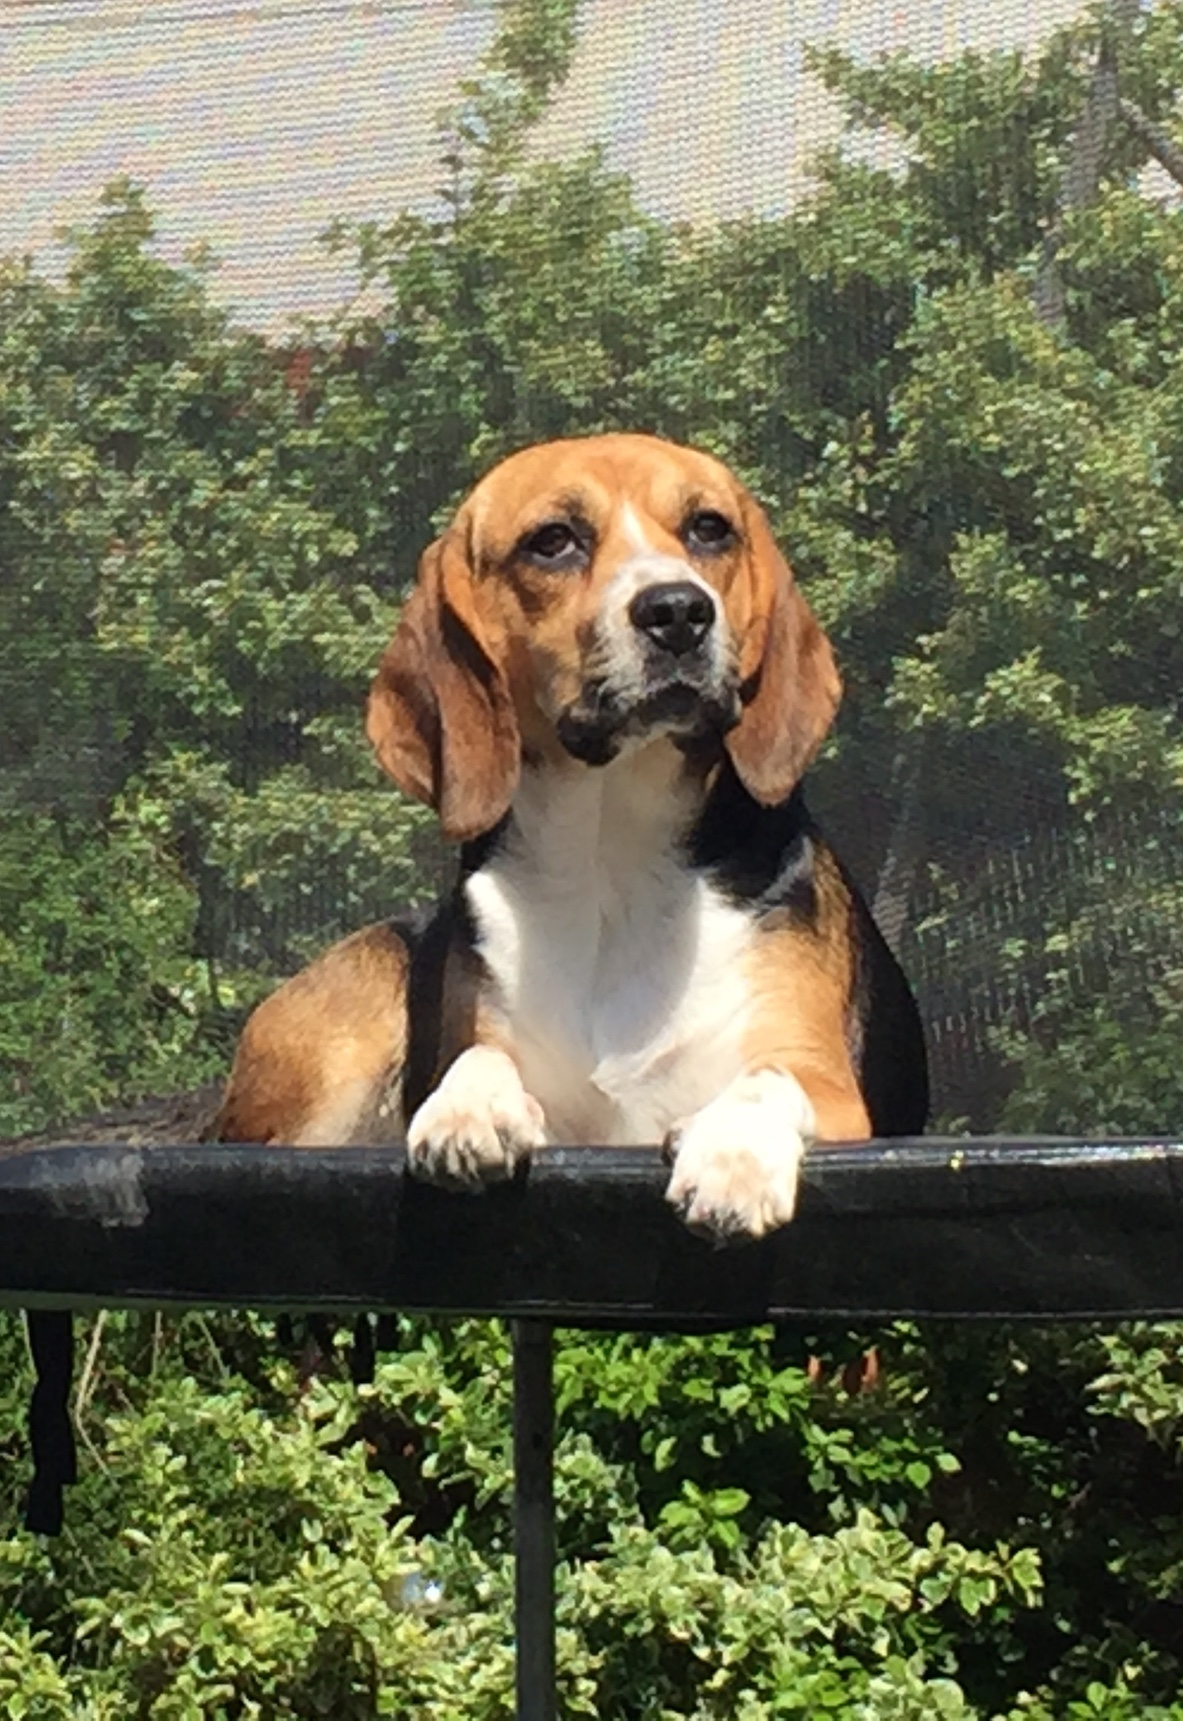 My gorgeous beagle,Poppy, is finally over her 'teenage' years, which means we've made it past her naughty phase (although she still has her moments) and the chewing and destroying is finally getting better - unless she finds one of Jacob's stray NERF bullet, then she can't seem to help herself.